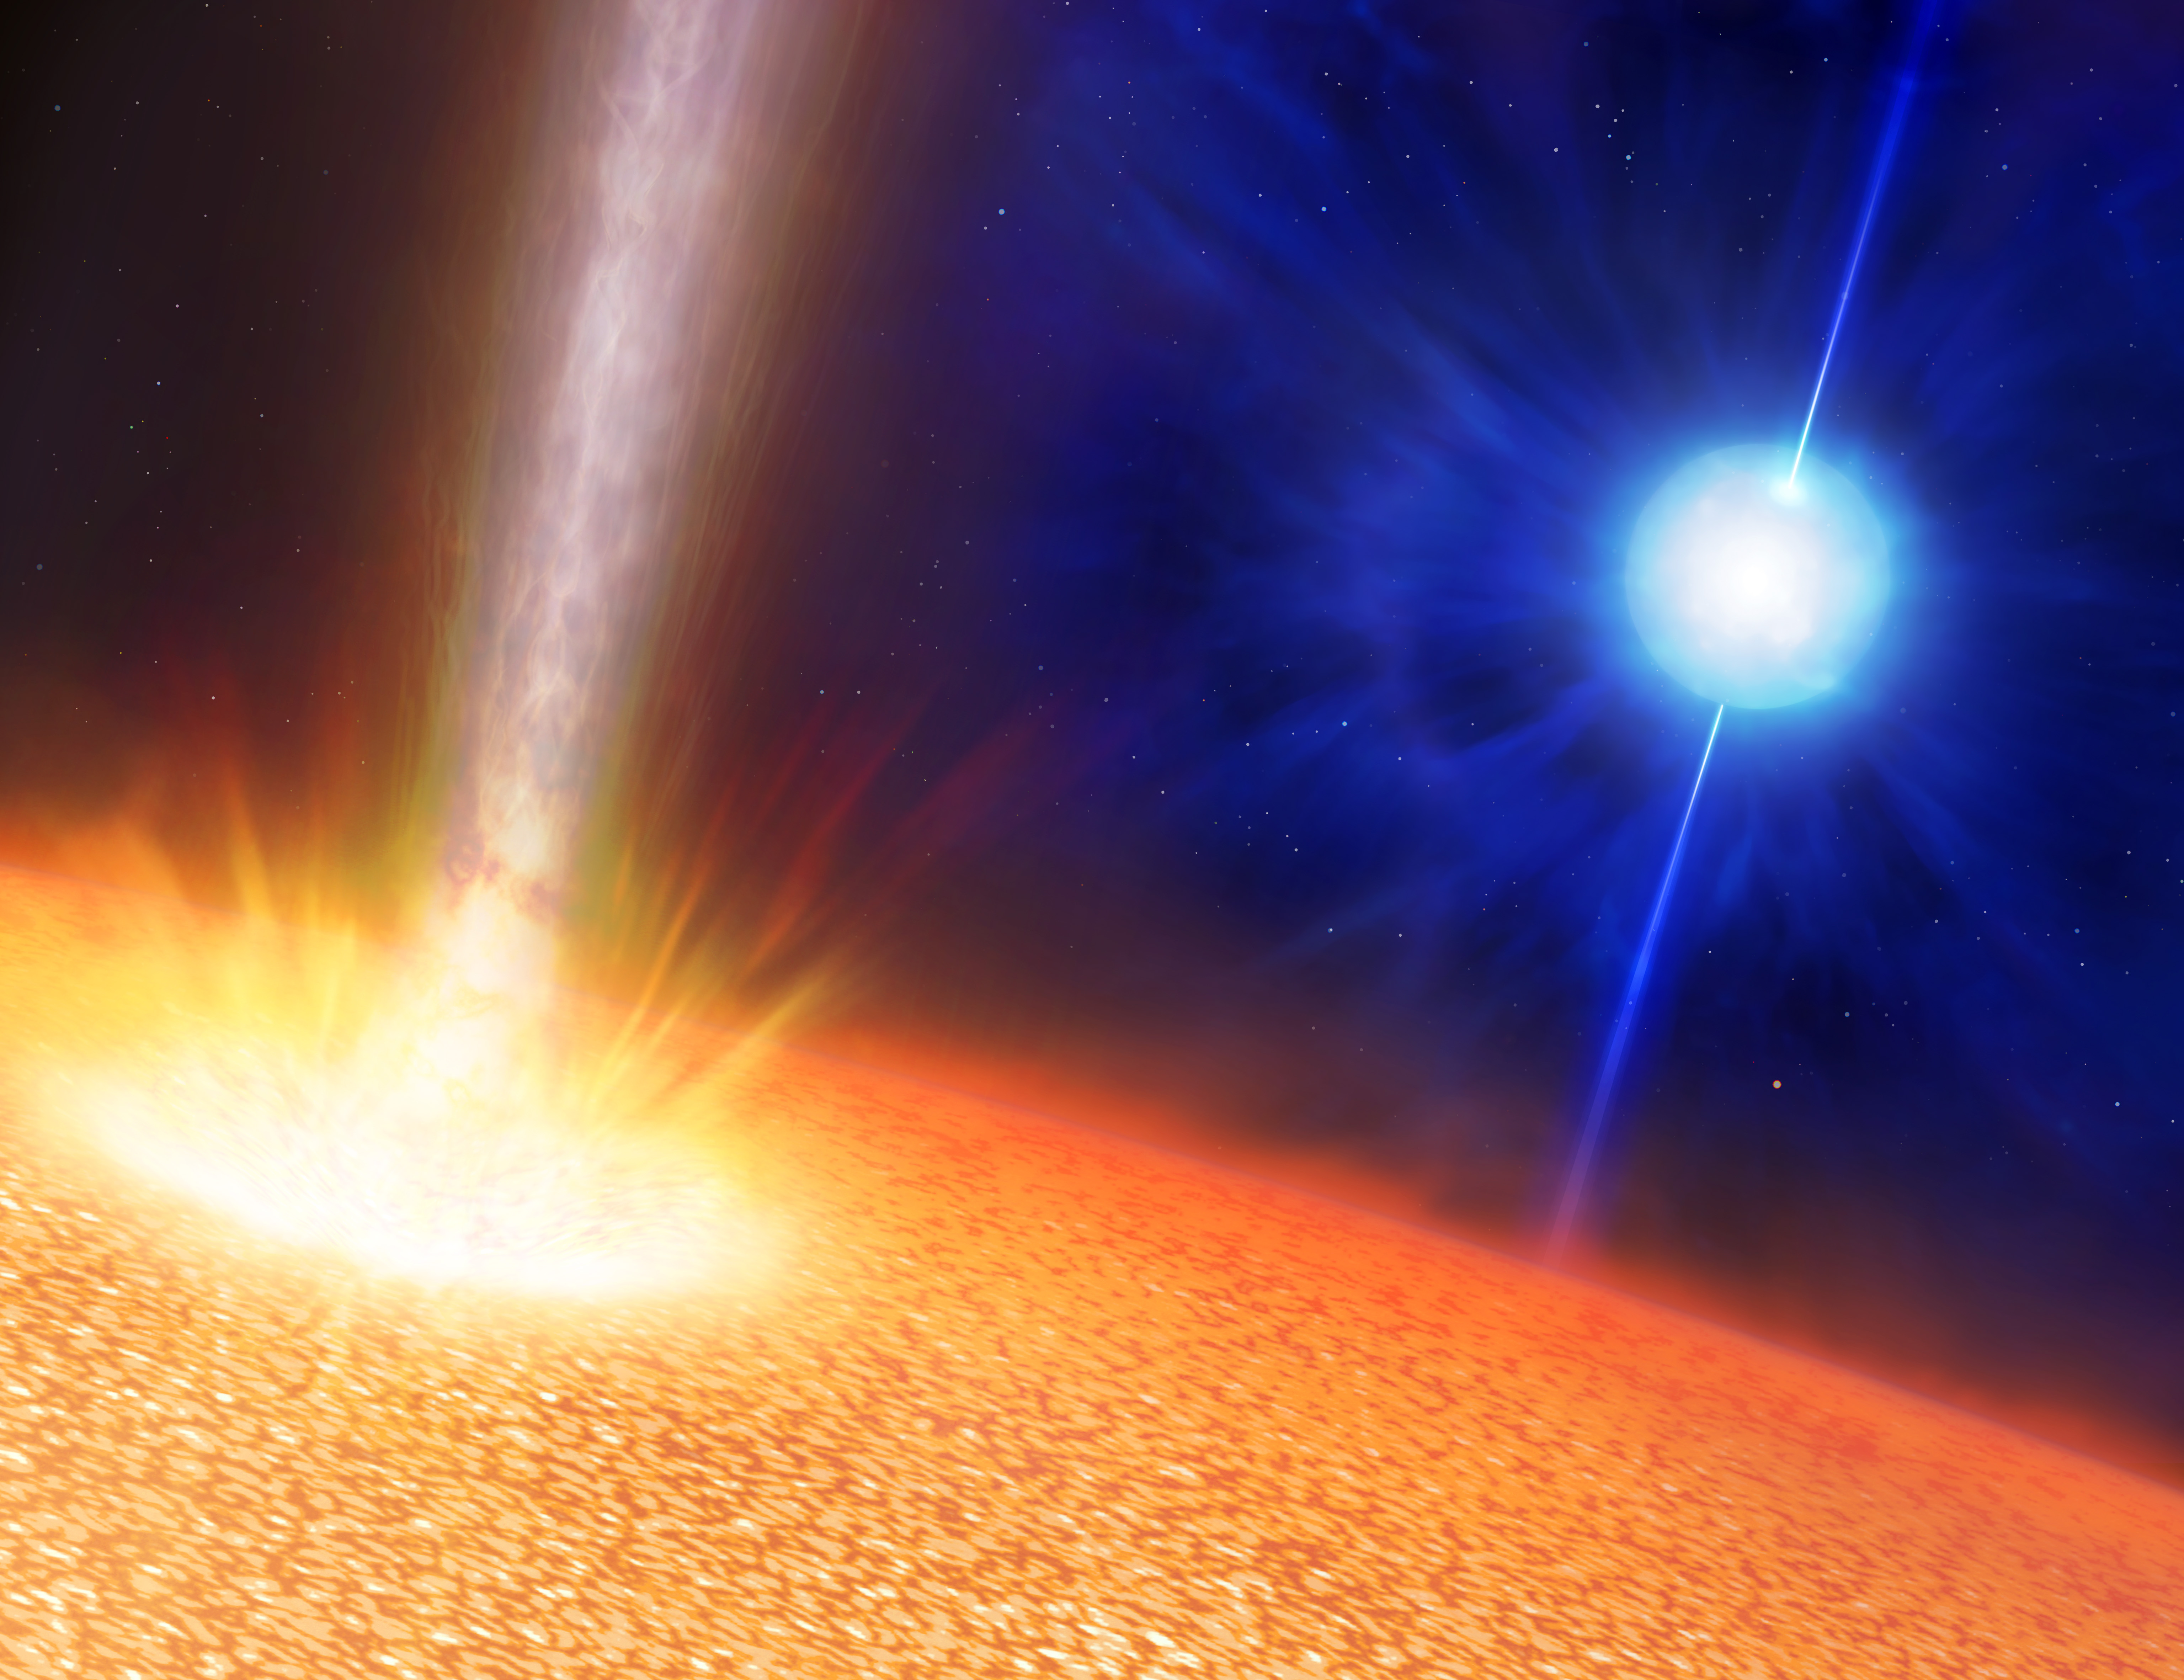 new potential class of long gamma ray bursts Focus: gamma-ray bursts determine potential locations for life december 8, 2014 &bullet physics 7, 124 powerful stellar explosions may have caused mass extinctions on earth and could also have prevented life from appearing on other planets until 5 billion years ago—and then only in the outskirts of galaxies.